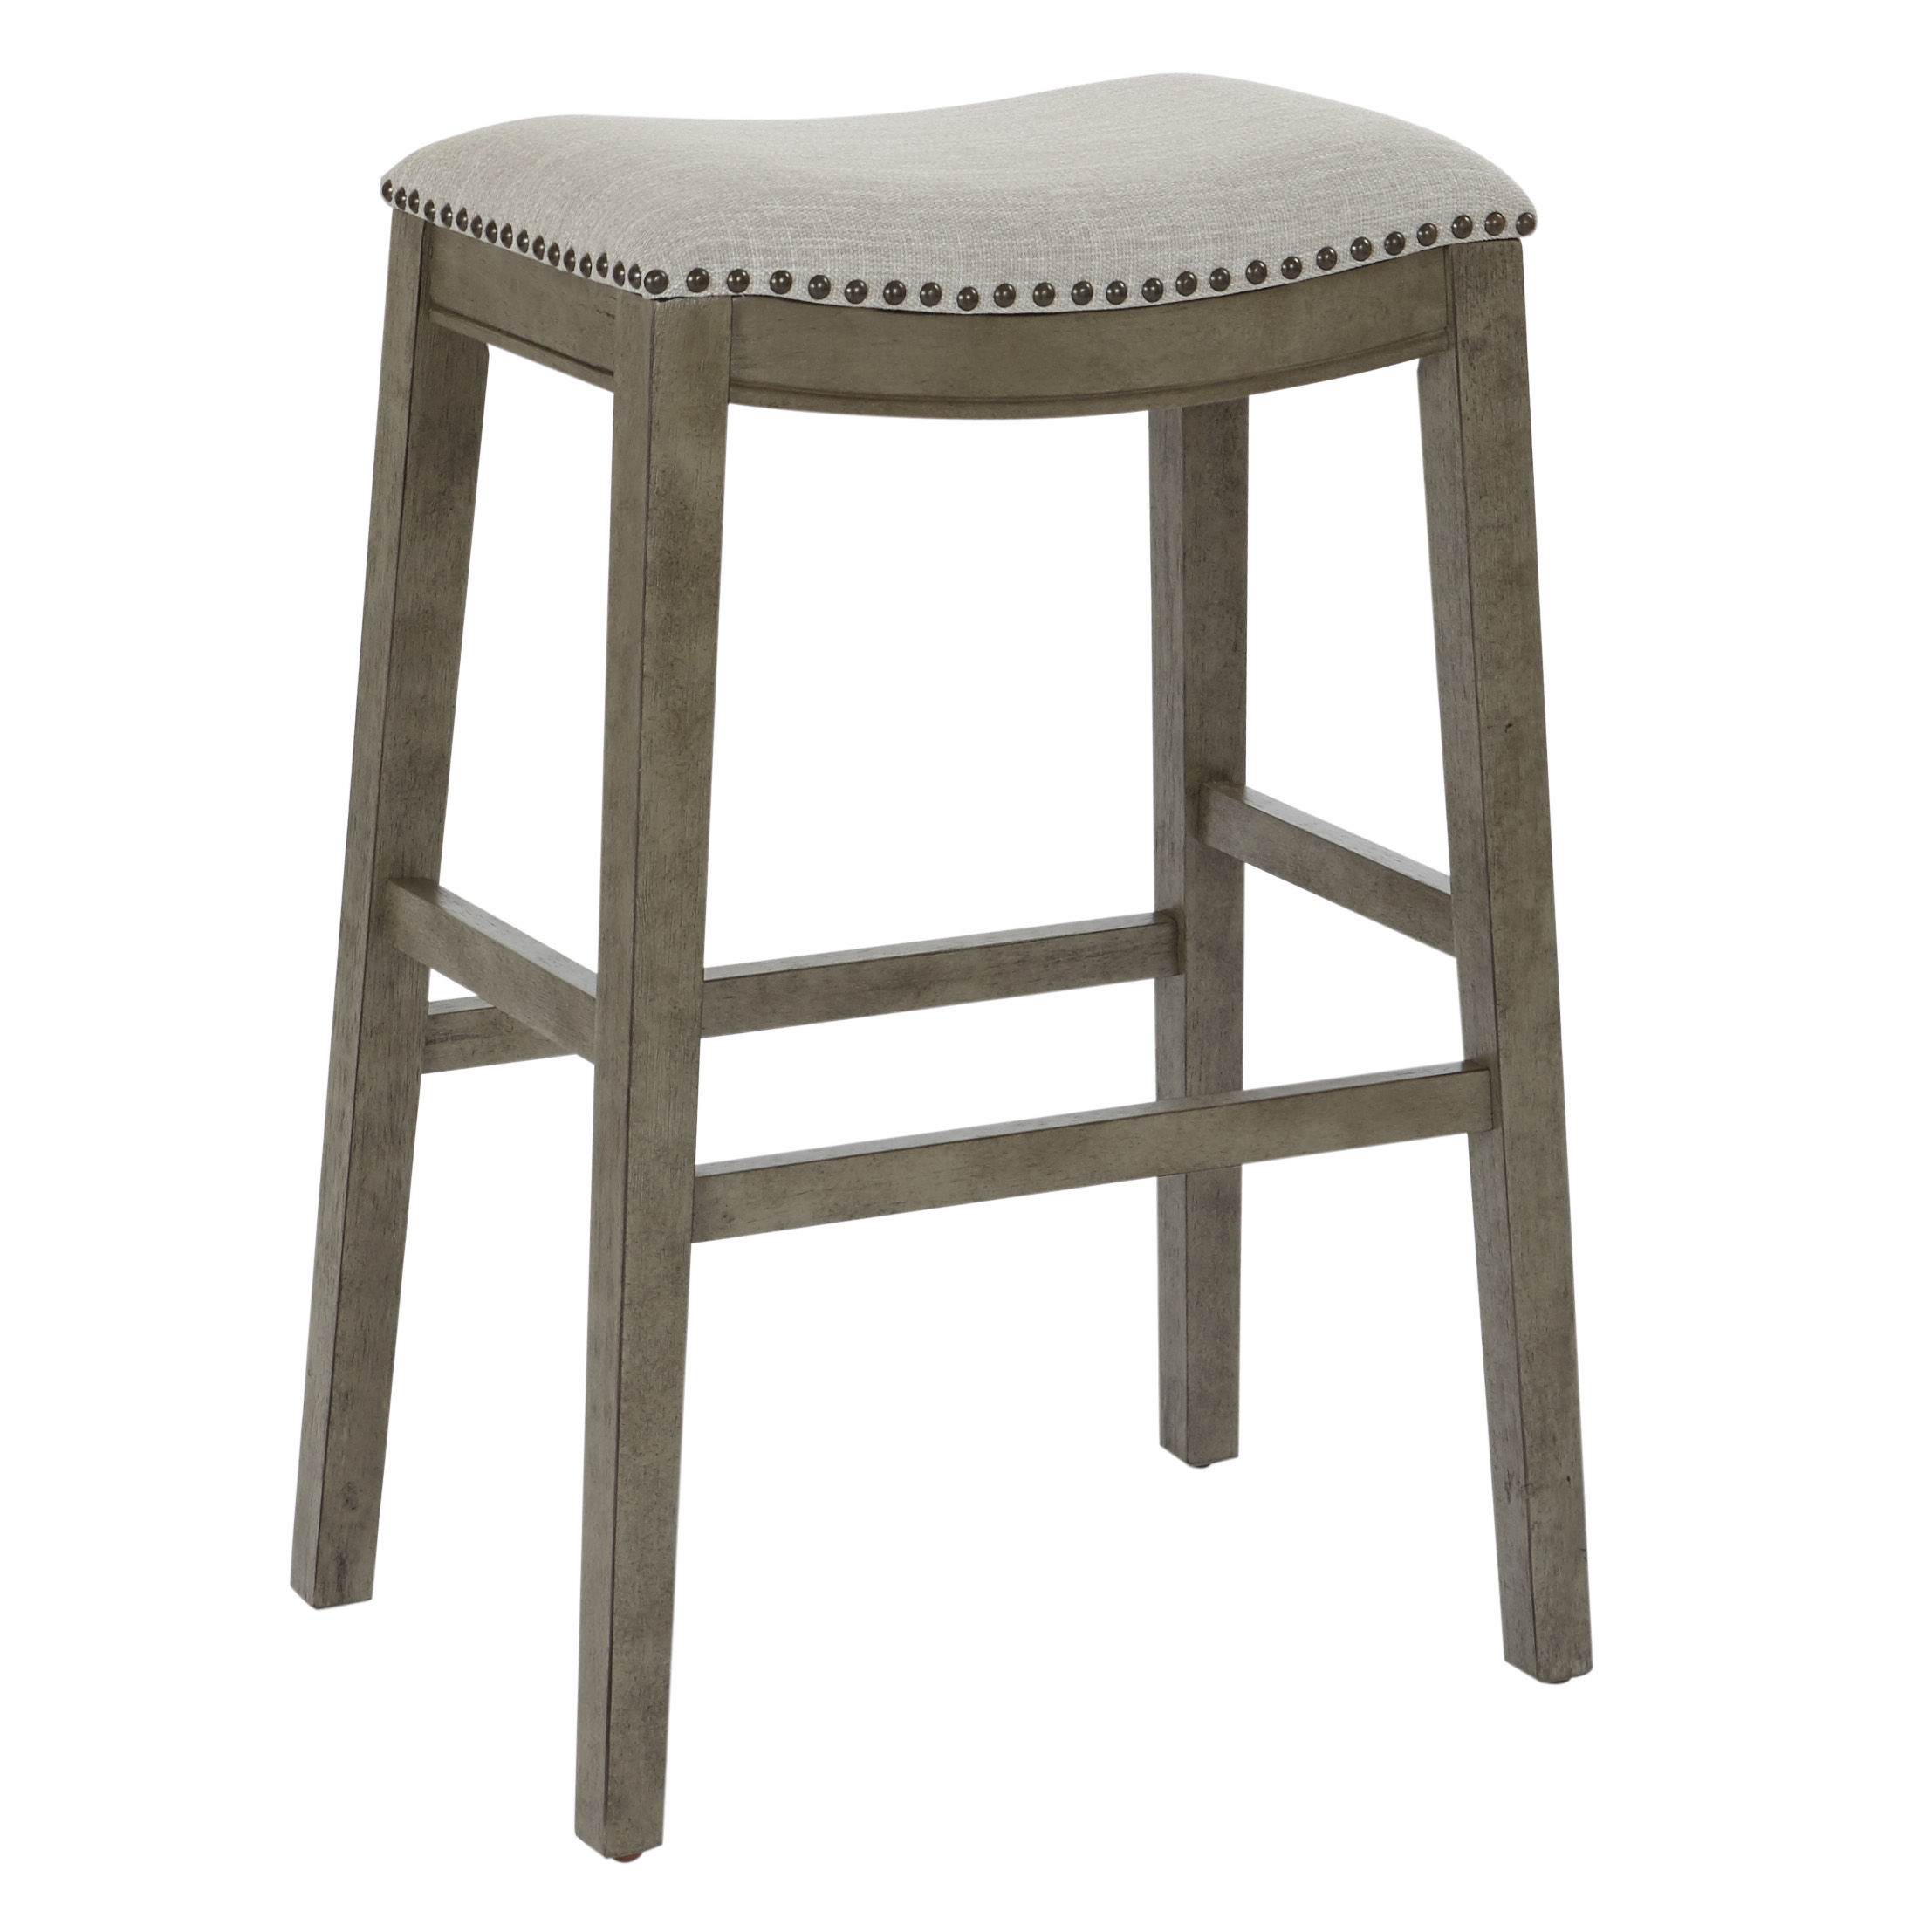 30 Inch Saddle Stools Click To Enlarge